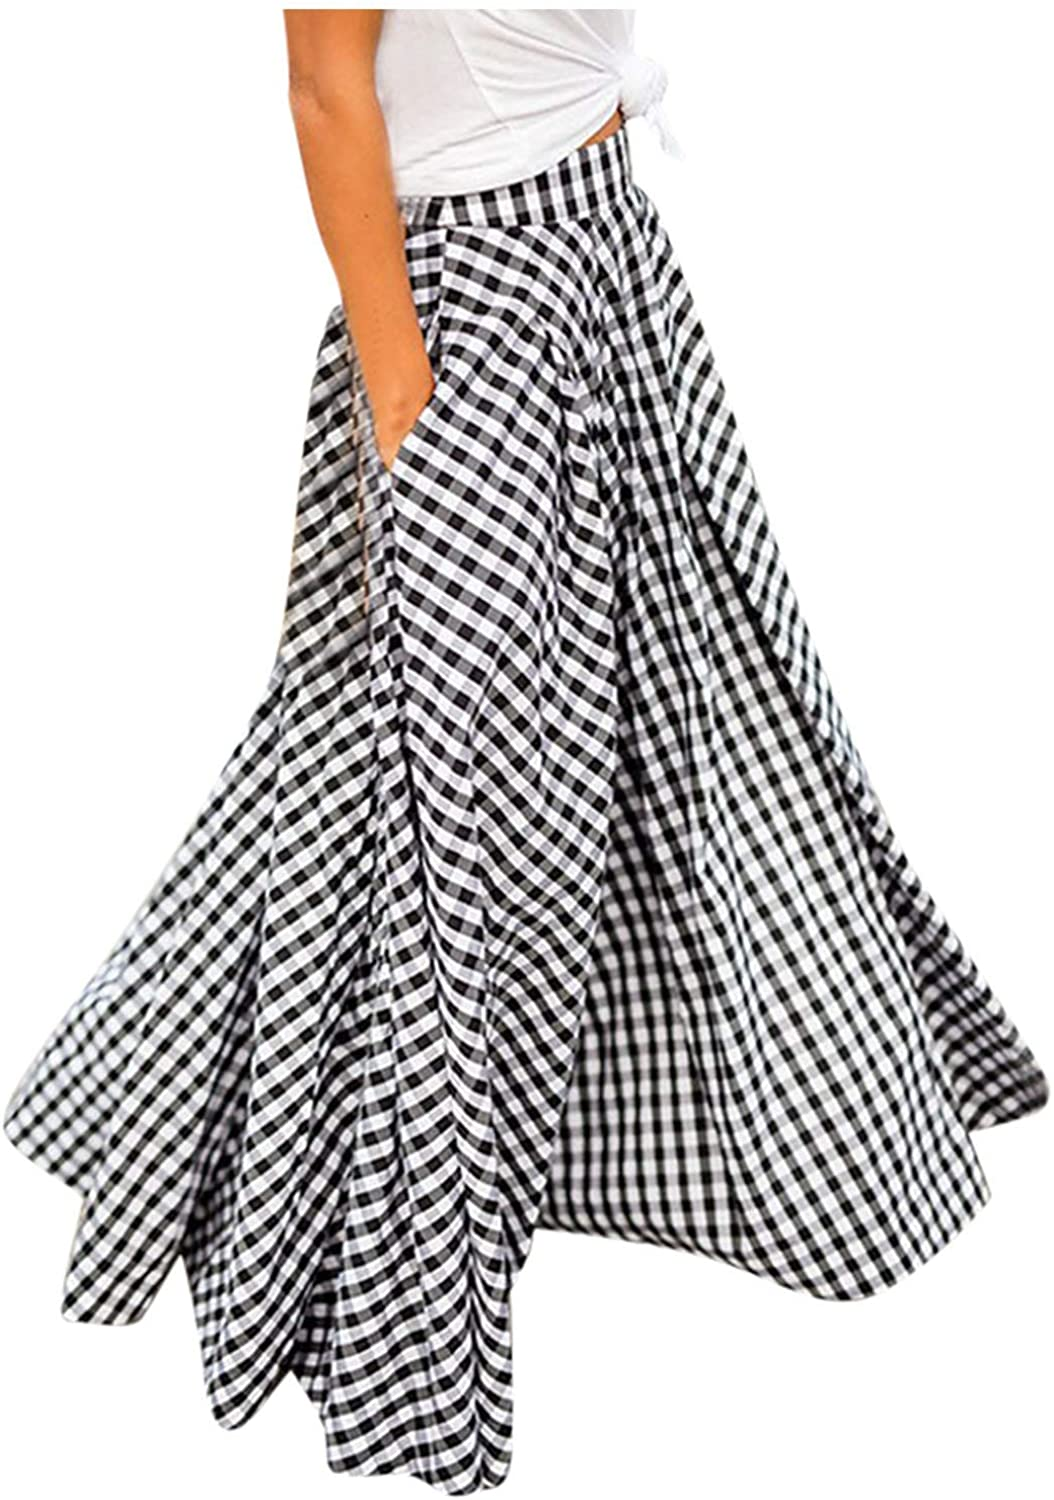 XCeihe Women's Summer New A-line High Waist Swing Maxi Plaid Skirt Casual Loose Fit Large Hem Skirts with Pocket